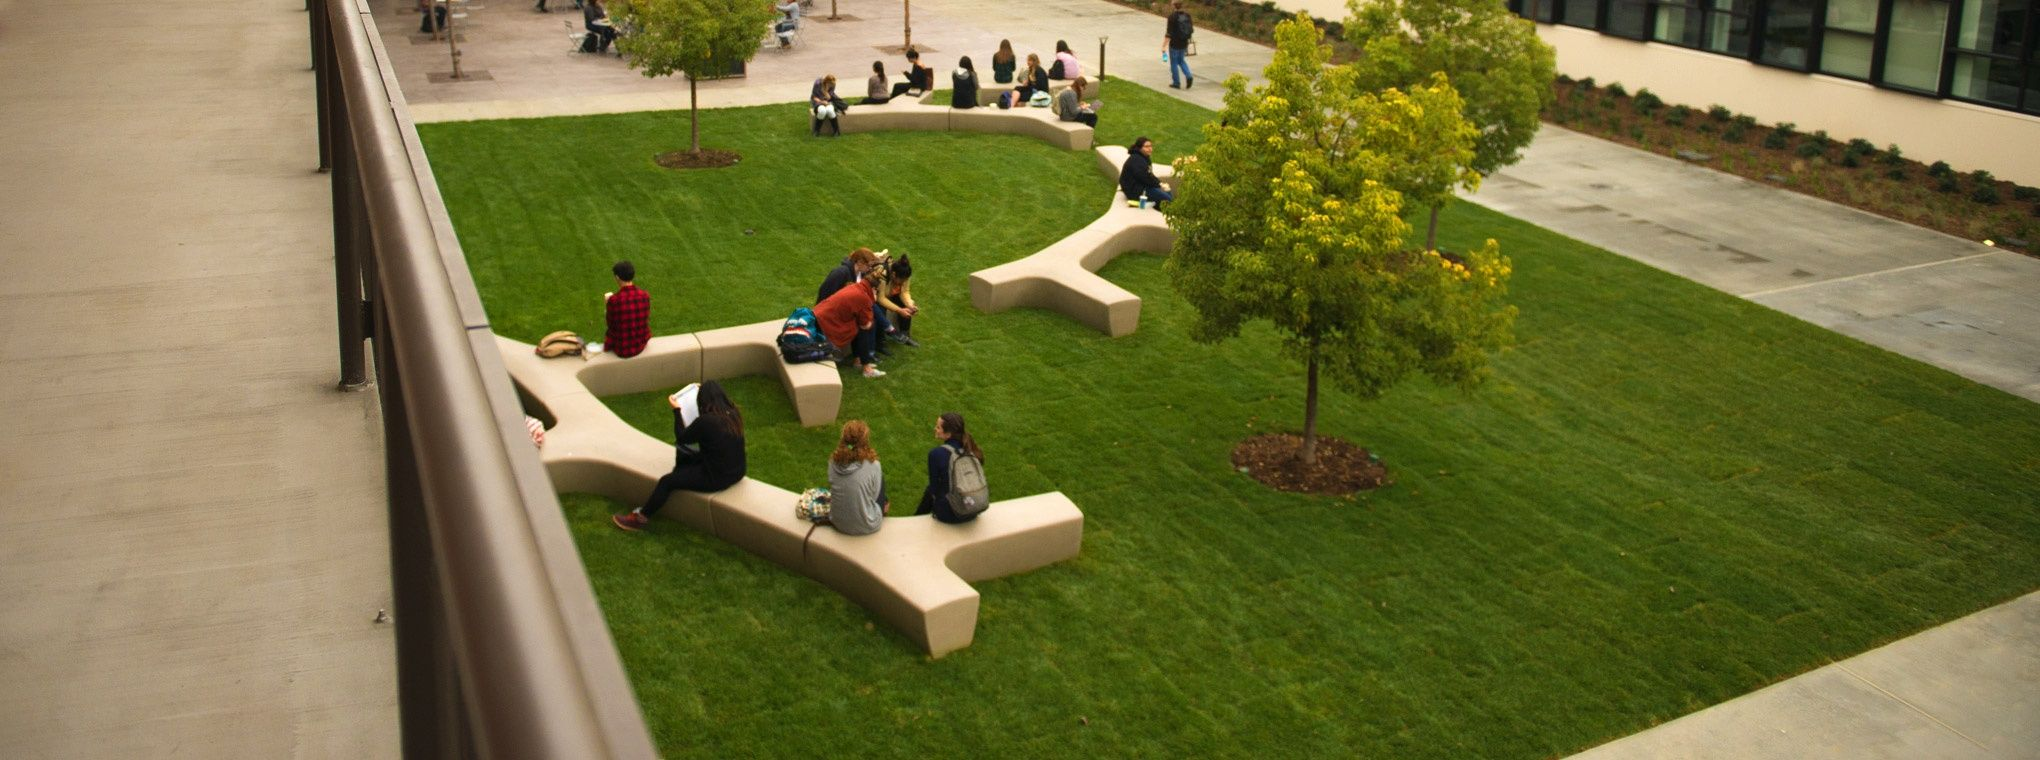 Image result for university student union cal state long